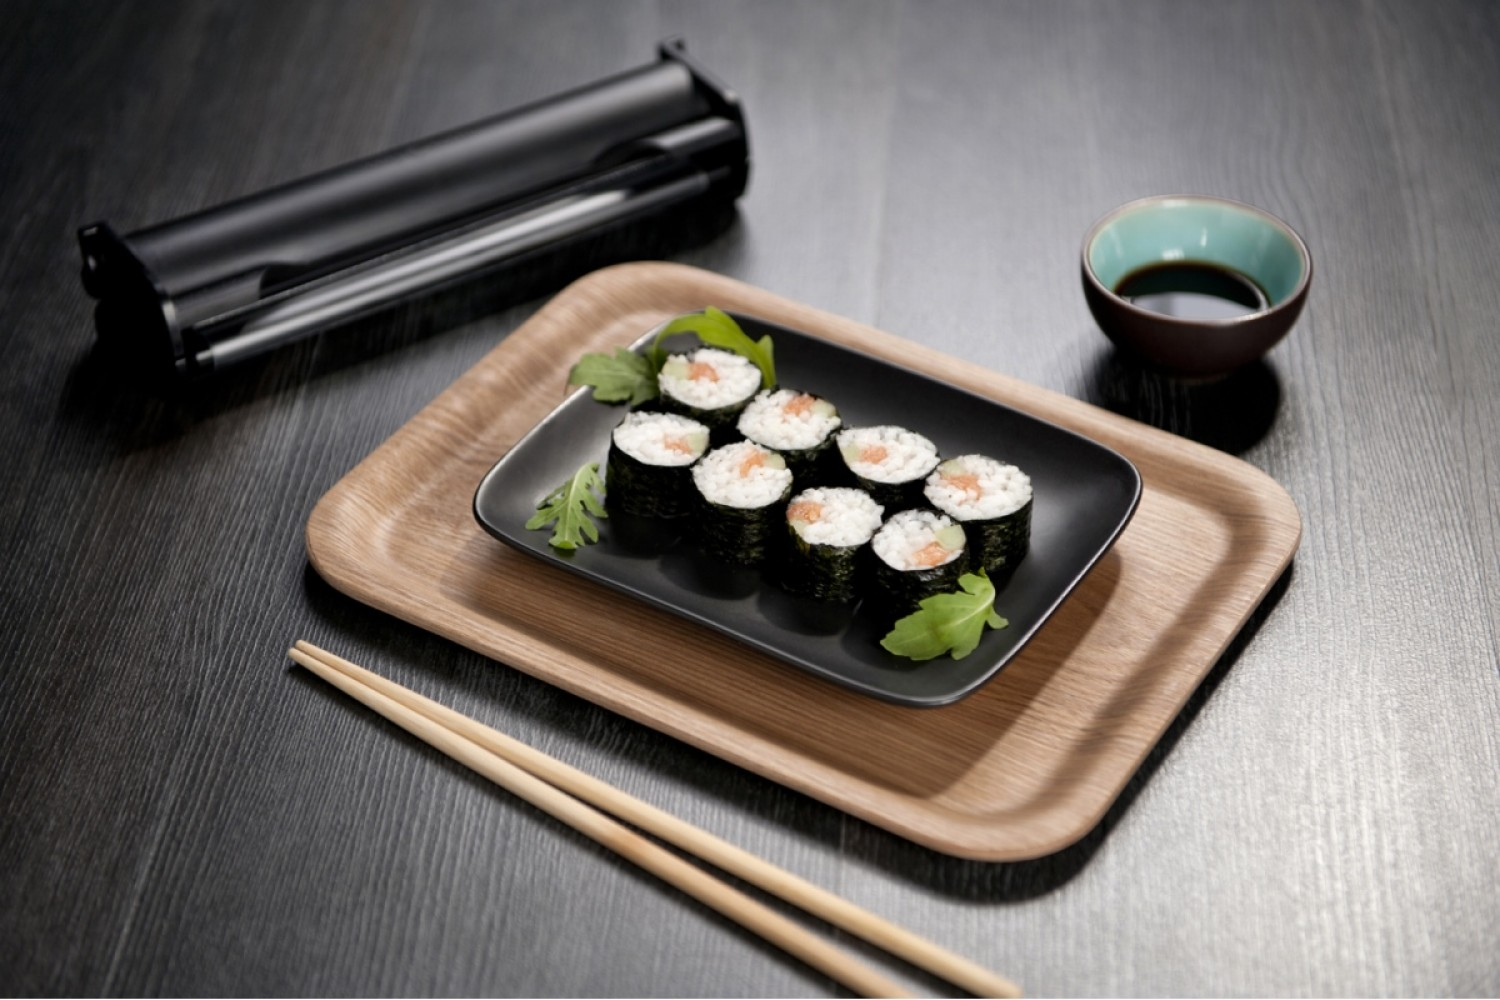 easy_sushi_faire_des_sushi_facilement_home